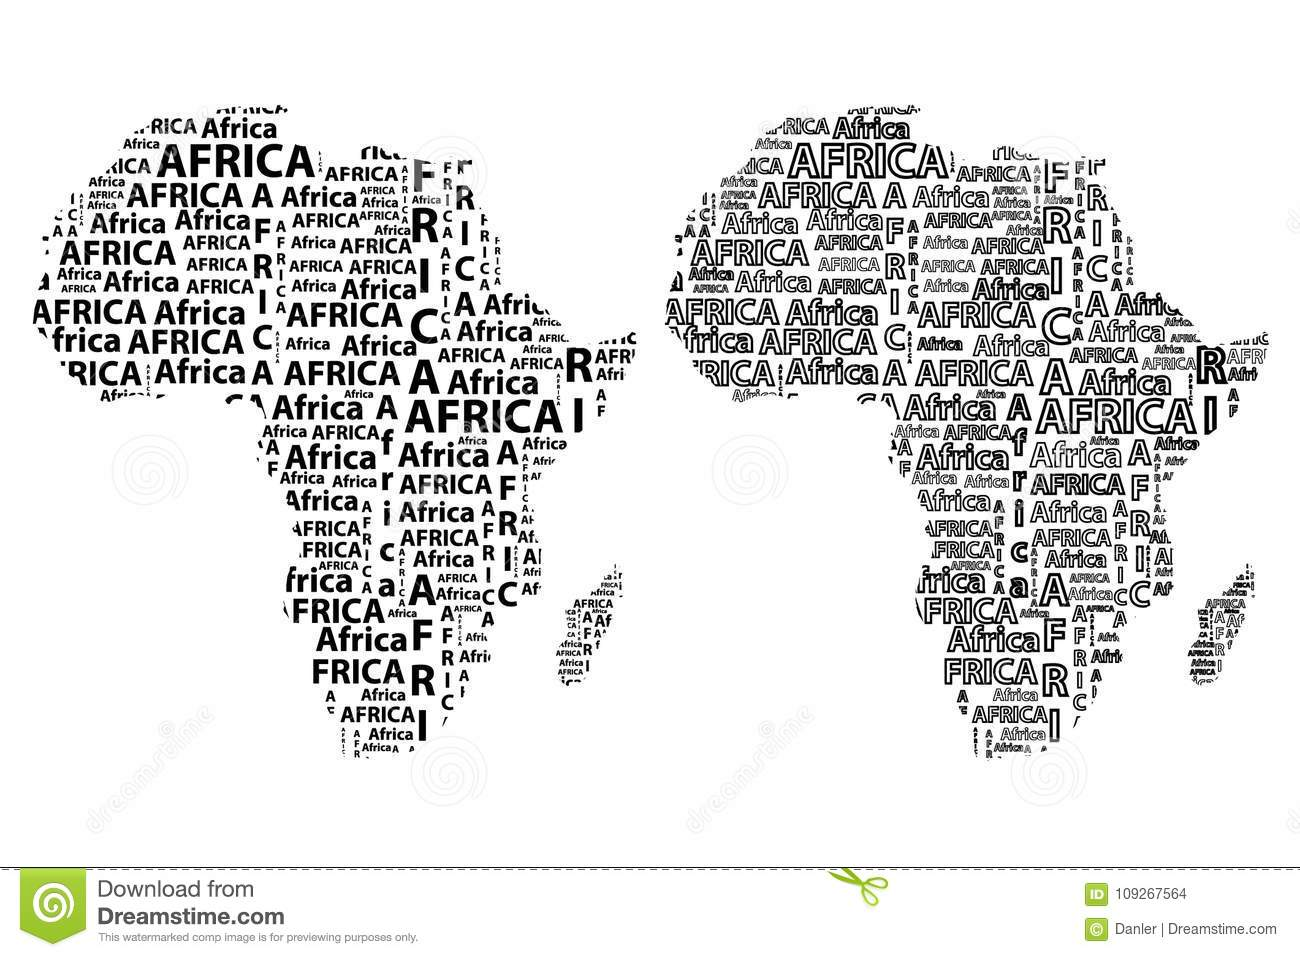 Jungle Maps: Map Of Africa To Label